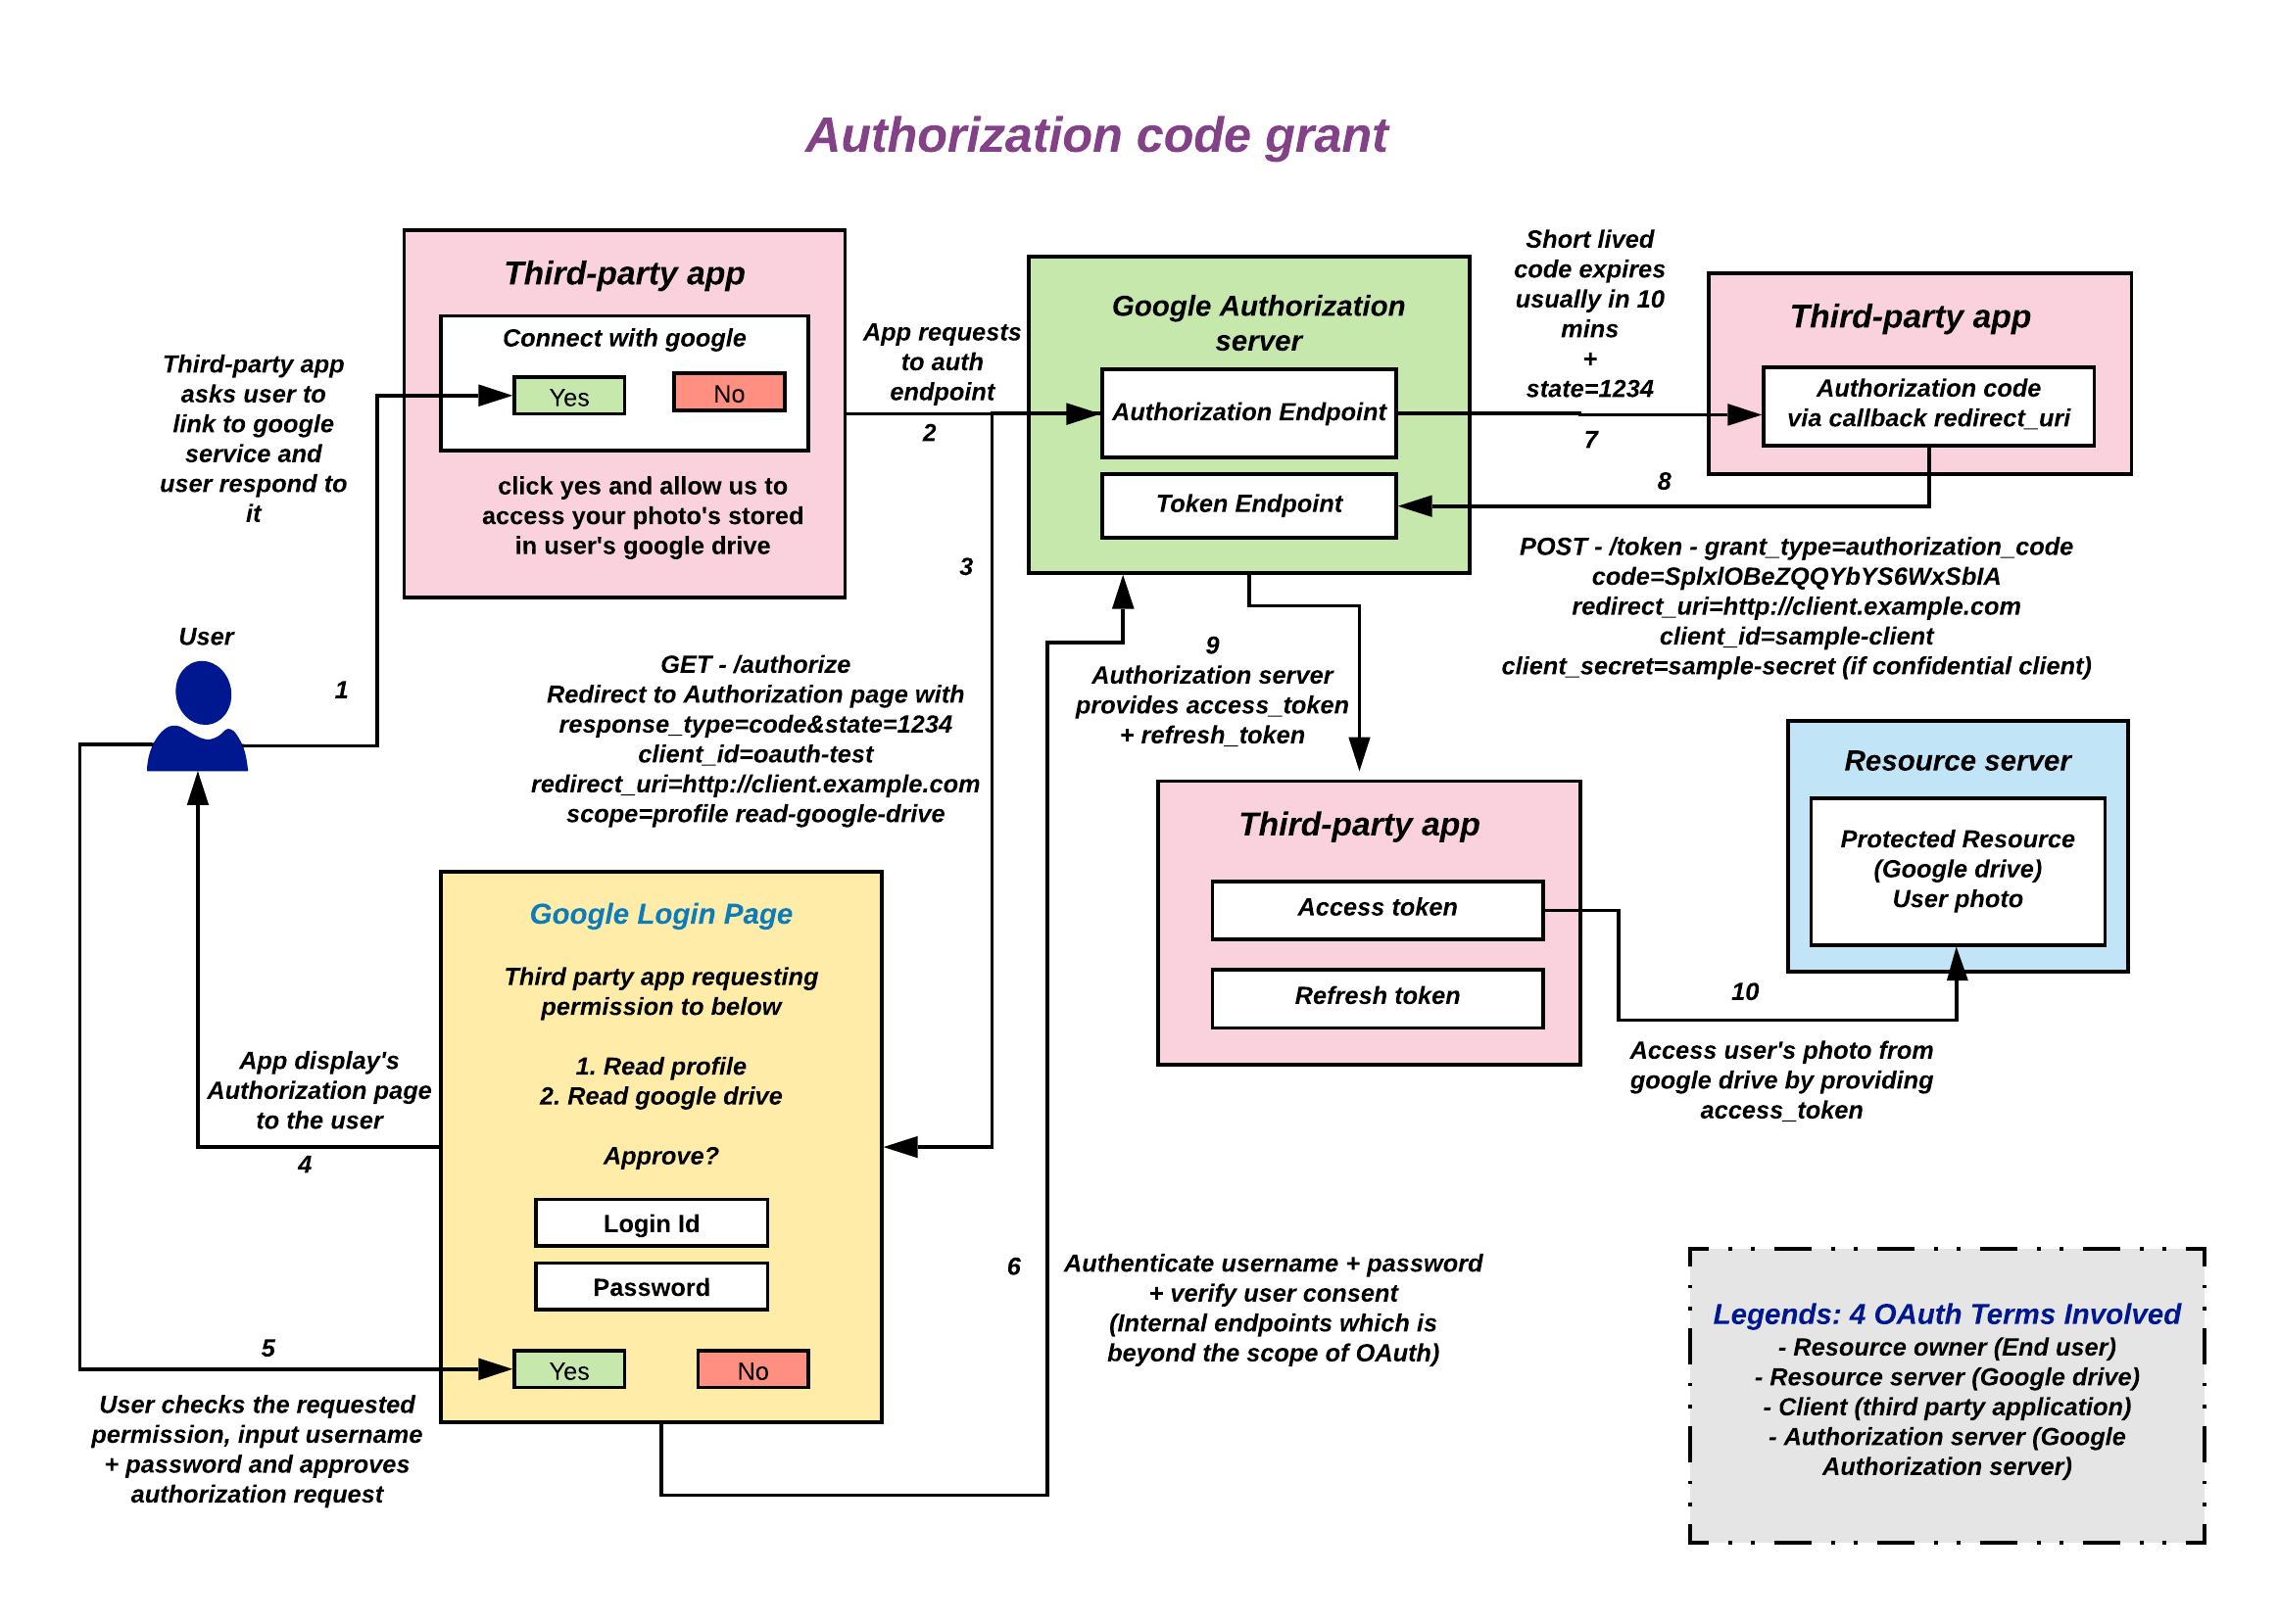 Image of Authorization code grant